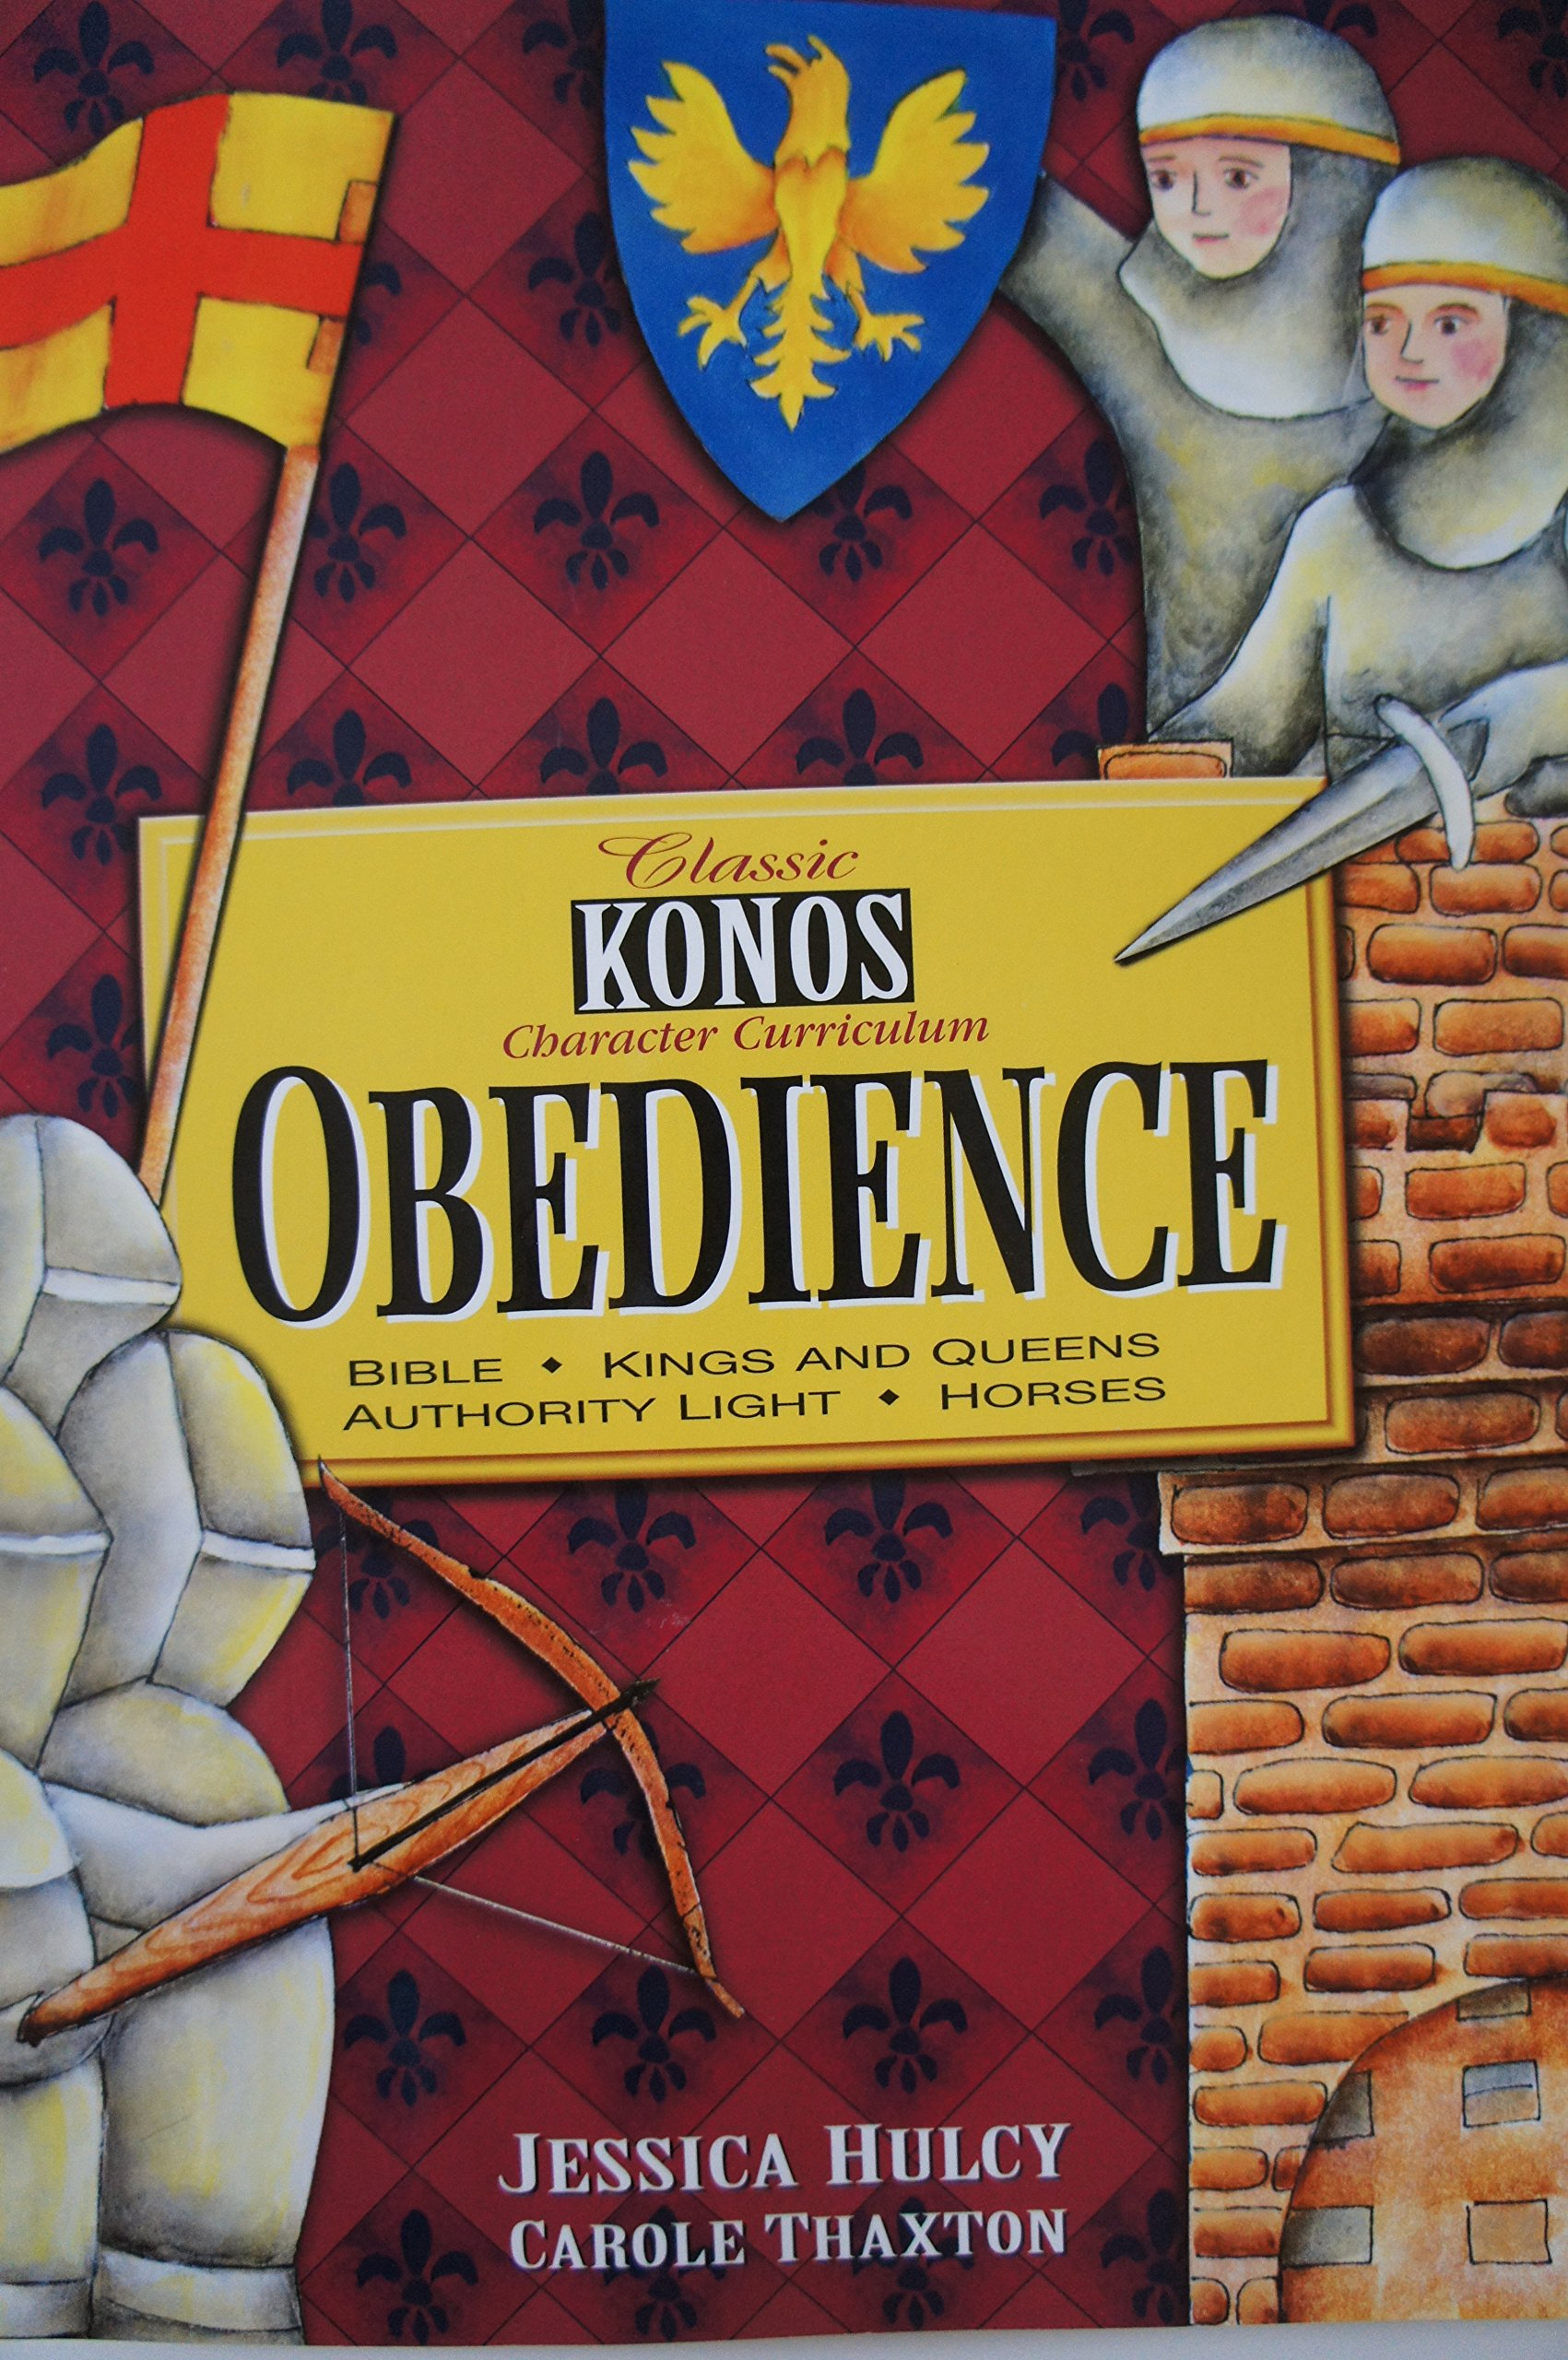 Download Classic Konos Character Curriculum: Obedience Unit (Bible, Kings and Queens, Authority Light, Horses) PDF